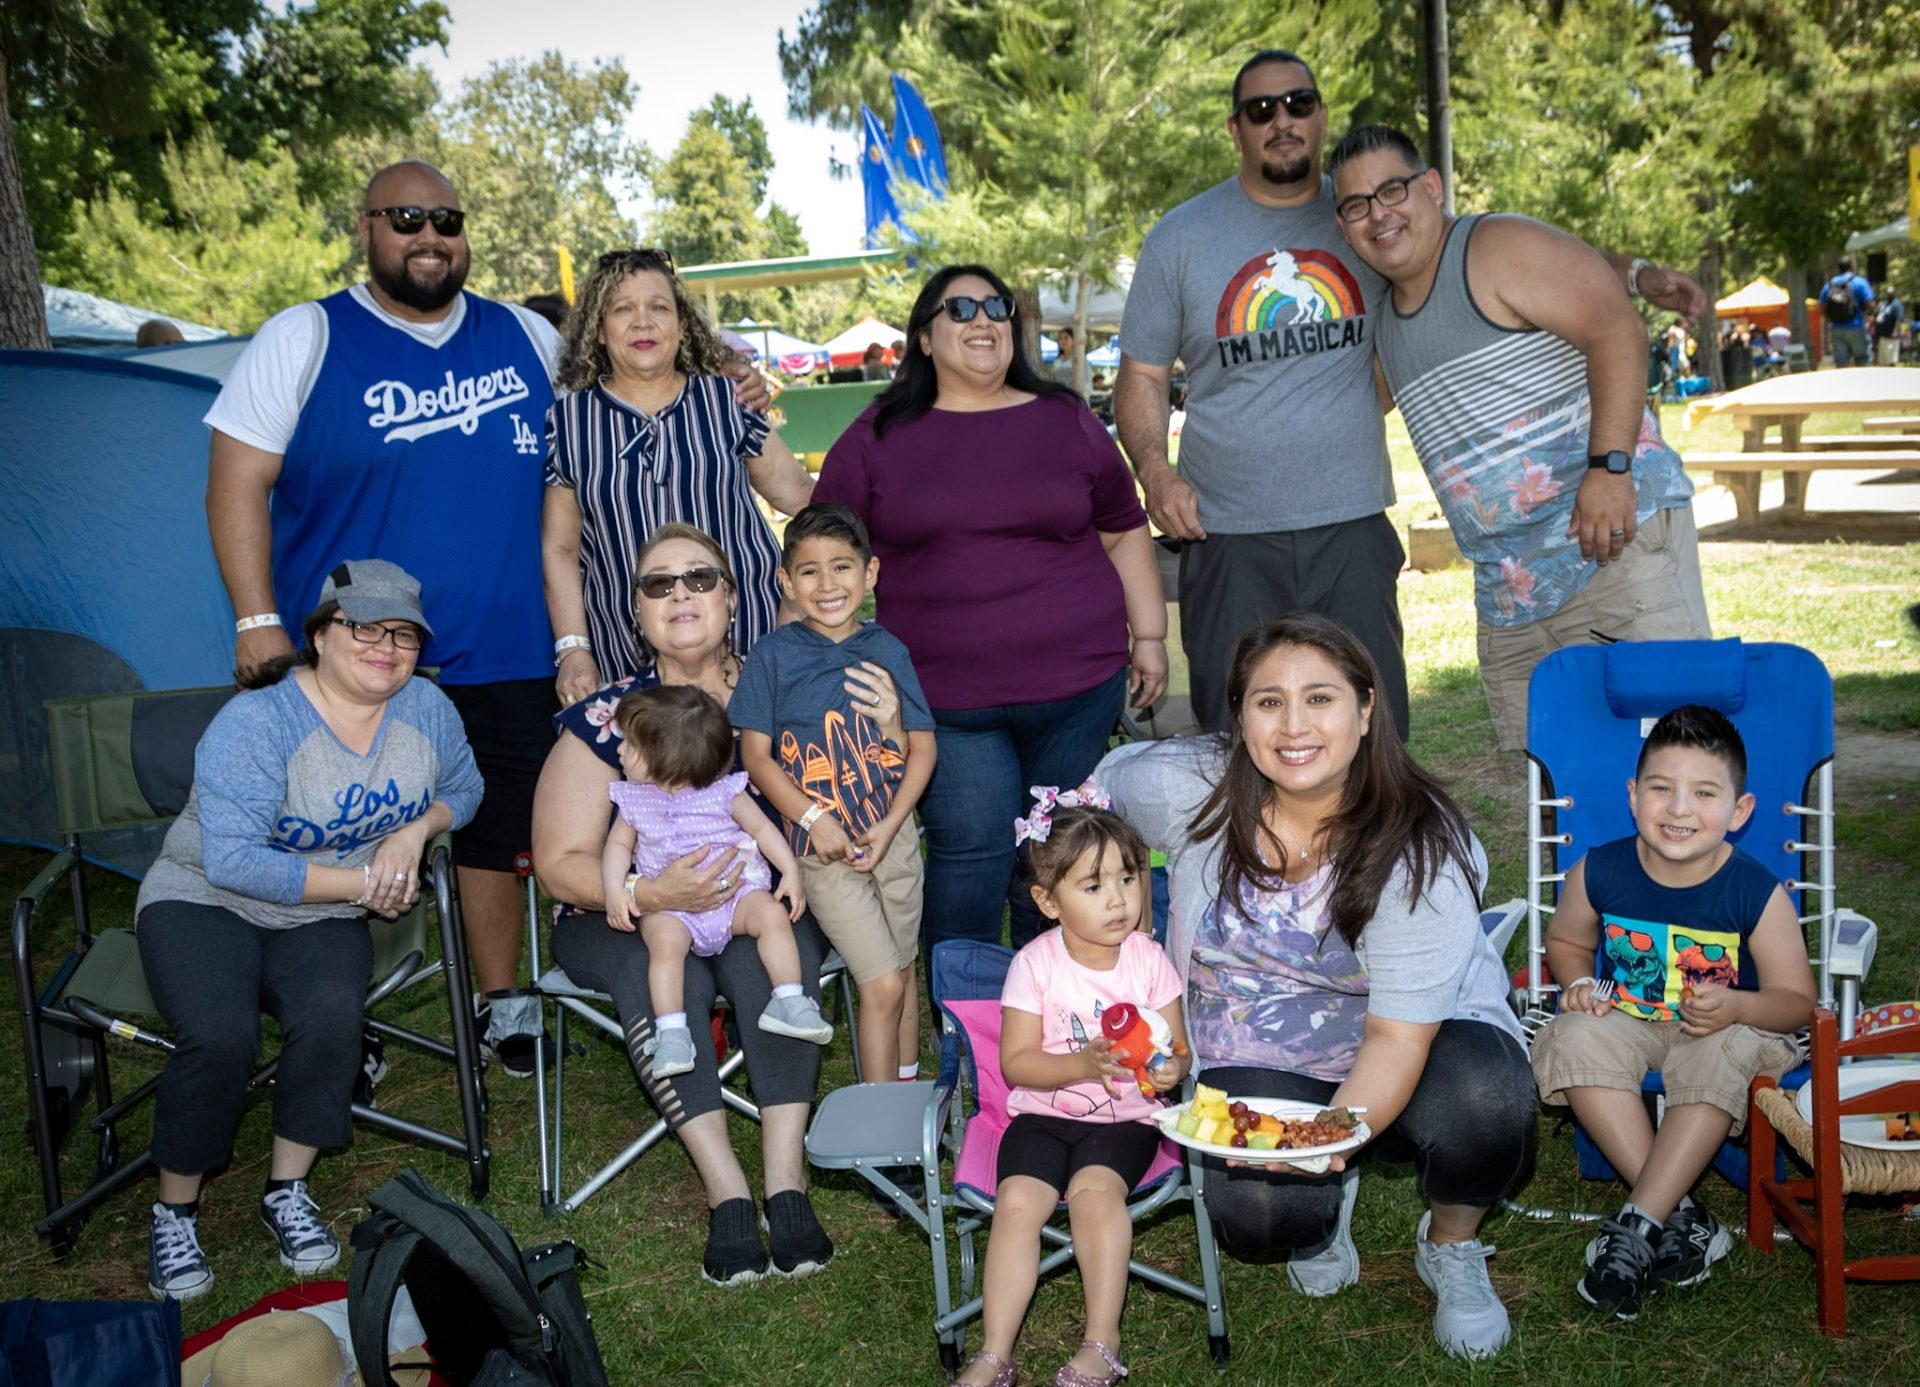 30-2019 Teamsters 495 Picnic-7715